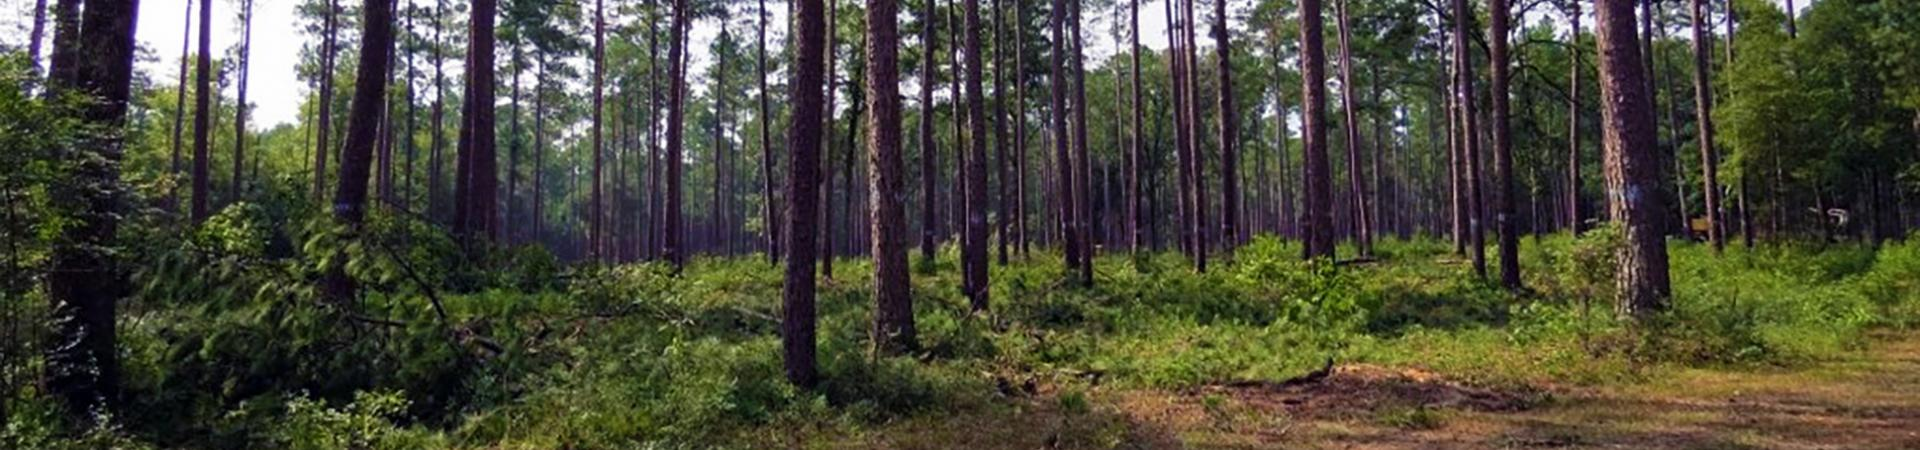 Thinned Pine Forest